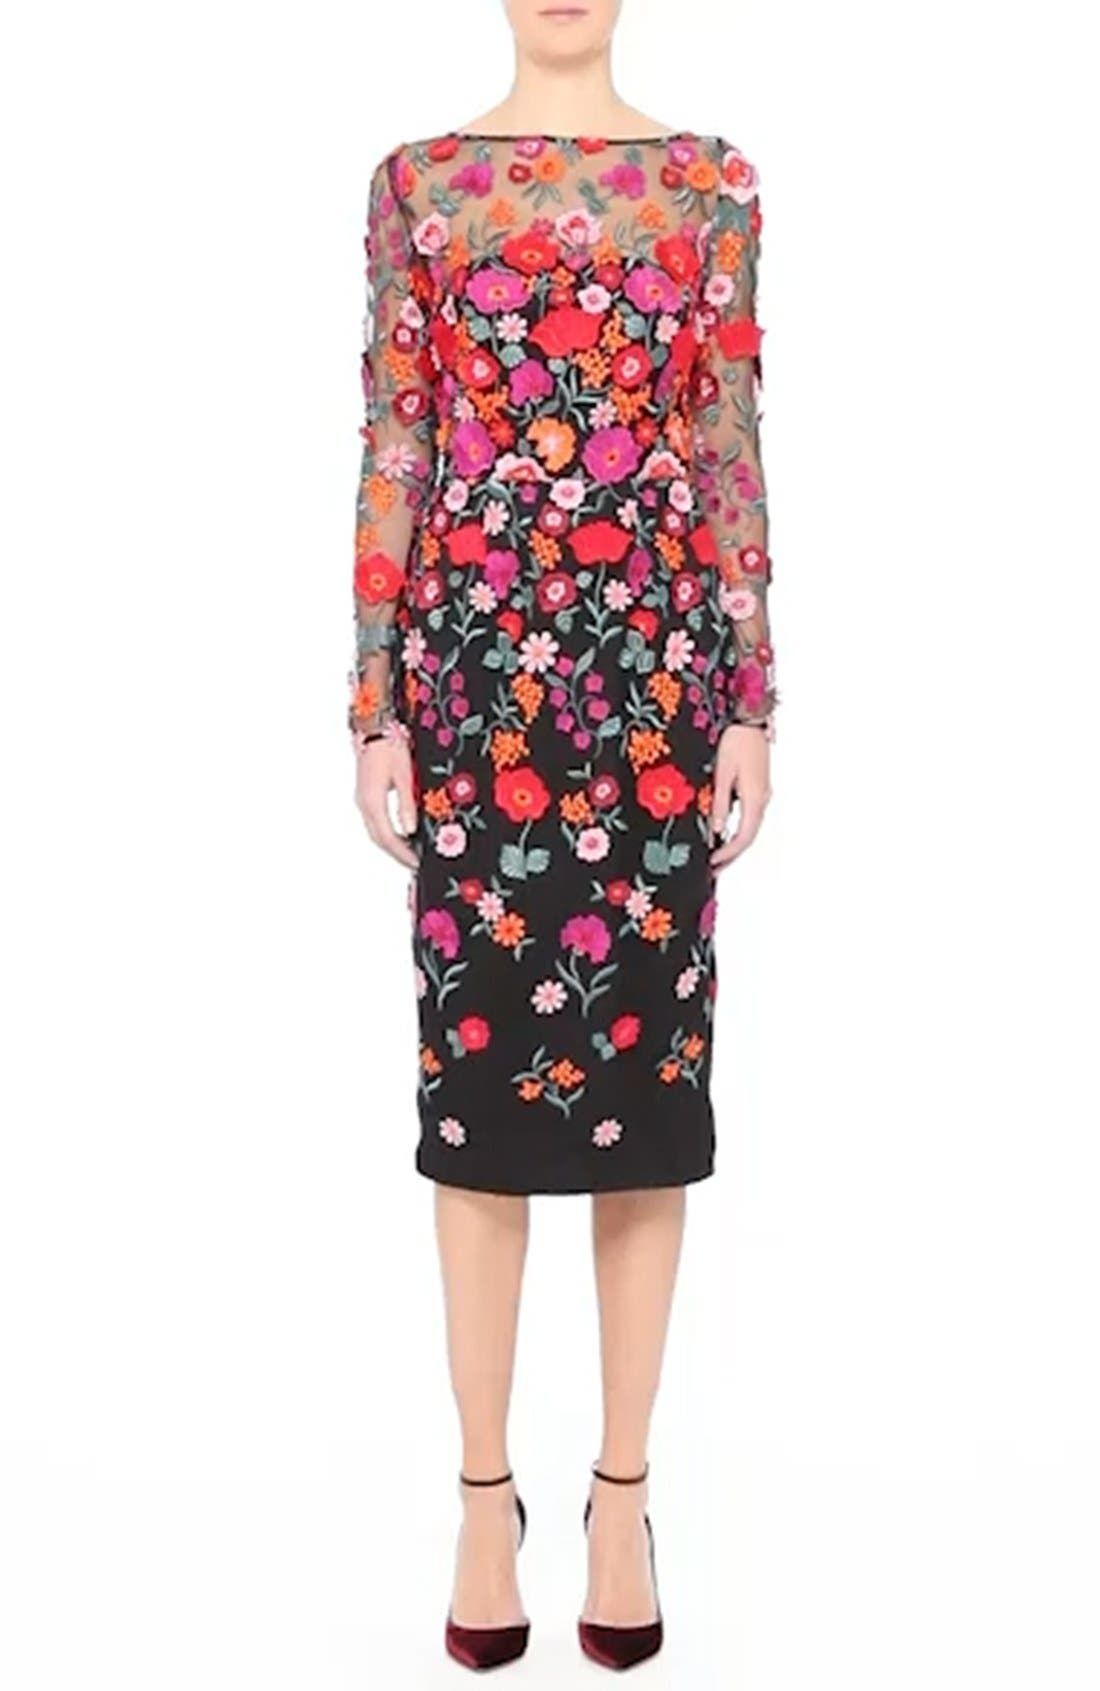 Floral Embroidered Pencil Dress,                             Alternate thumbnail 7, color,                             001